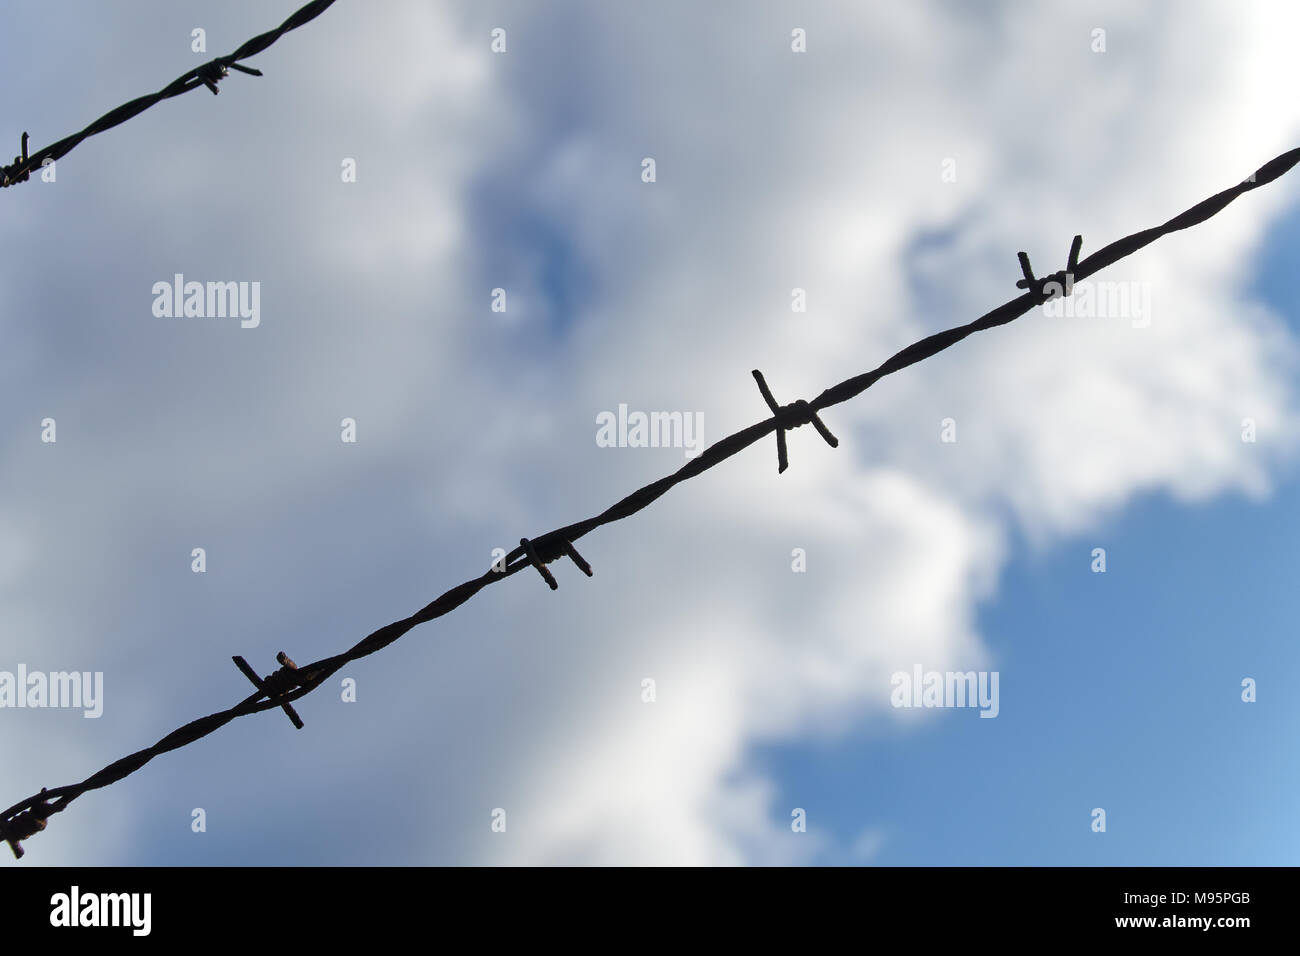 Two rows of barbed wire cross in front of a beautiful blue and cloudy sky on a summer day - Stock Image